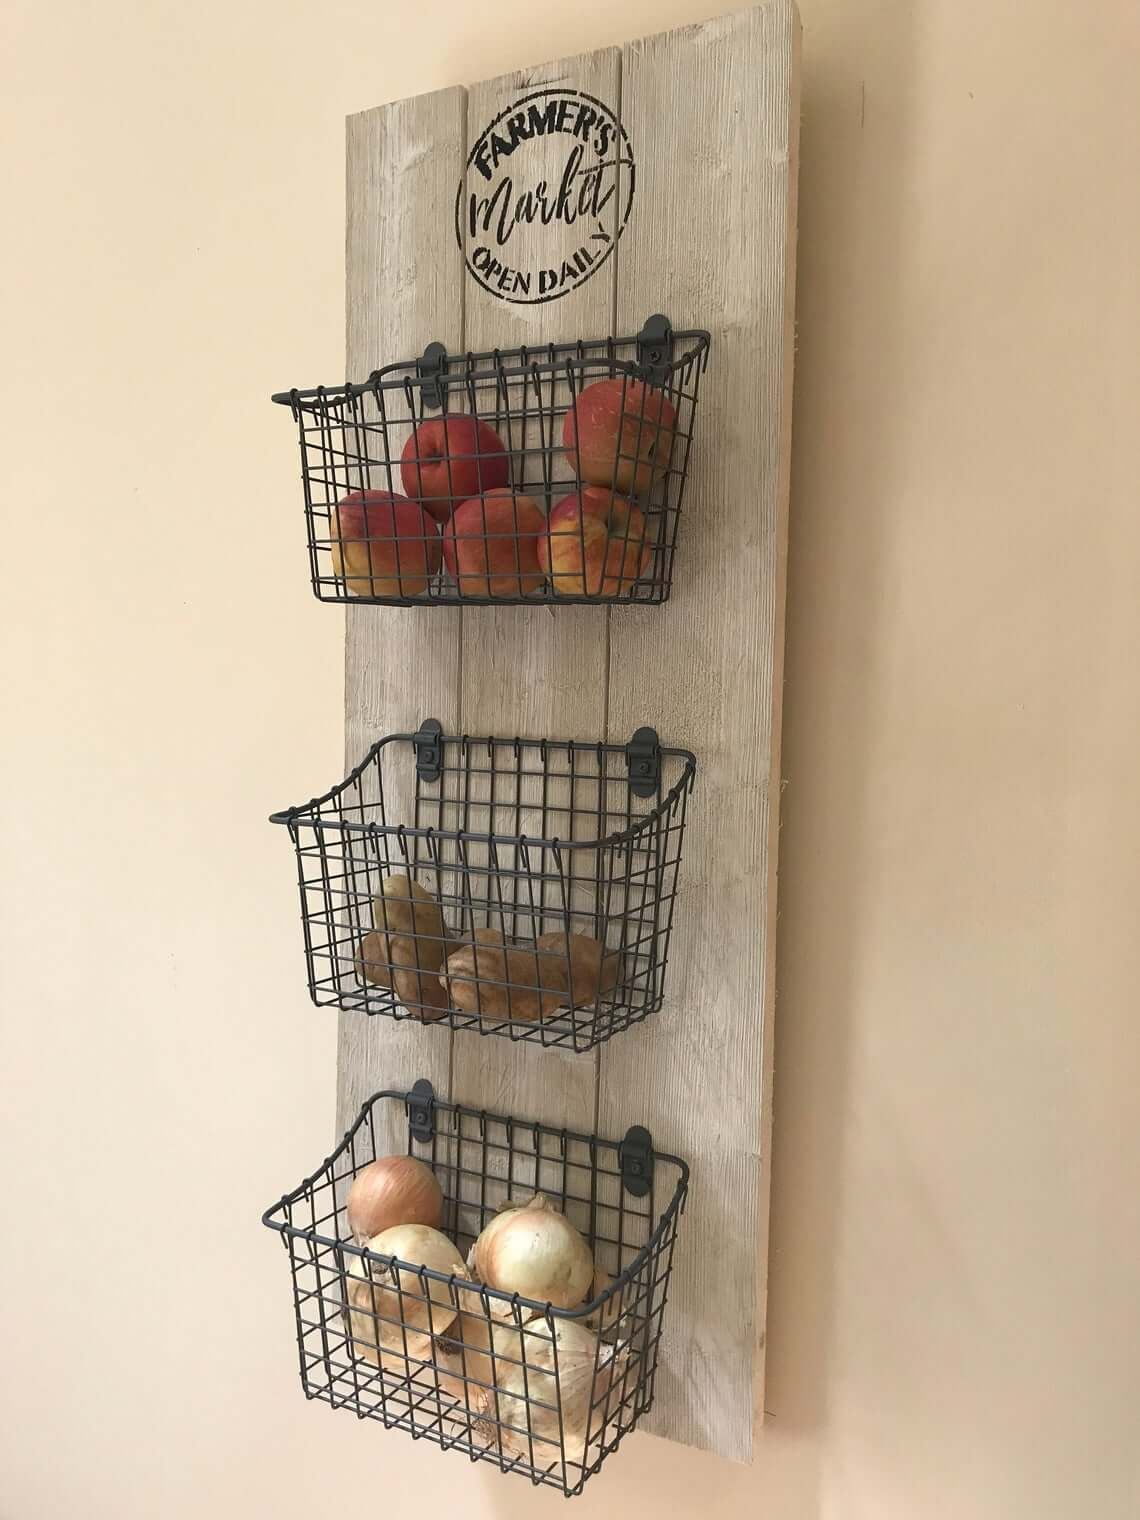 Farmer's Market Hanging Kitchen Organizer with Baskets